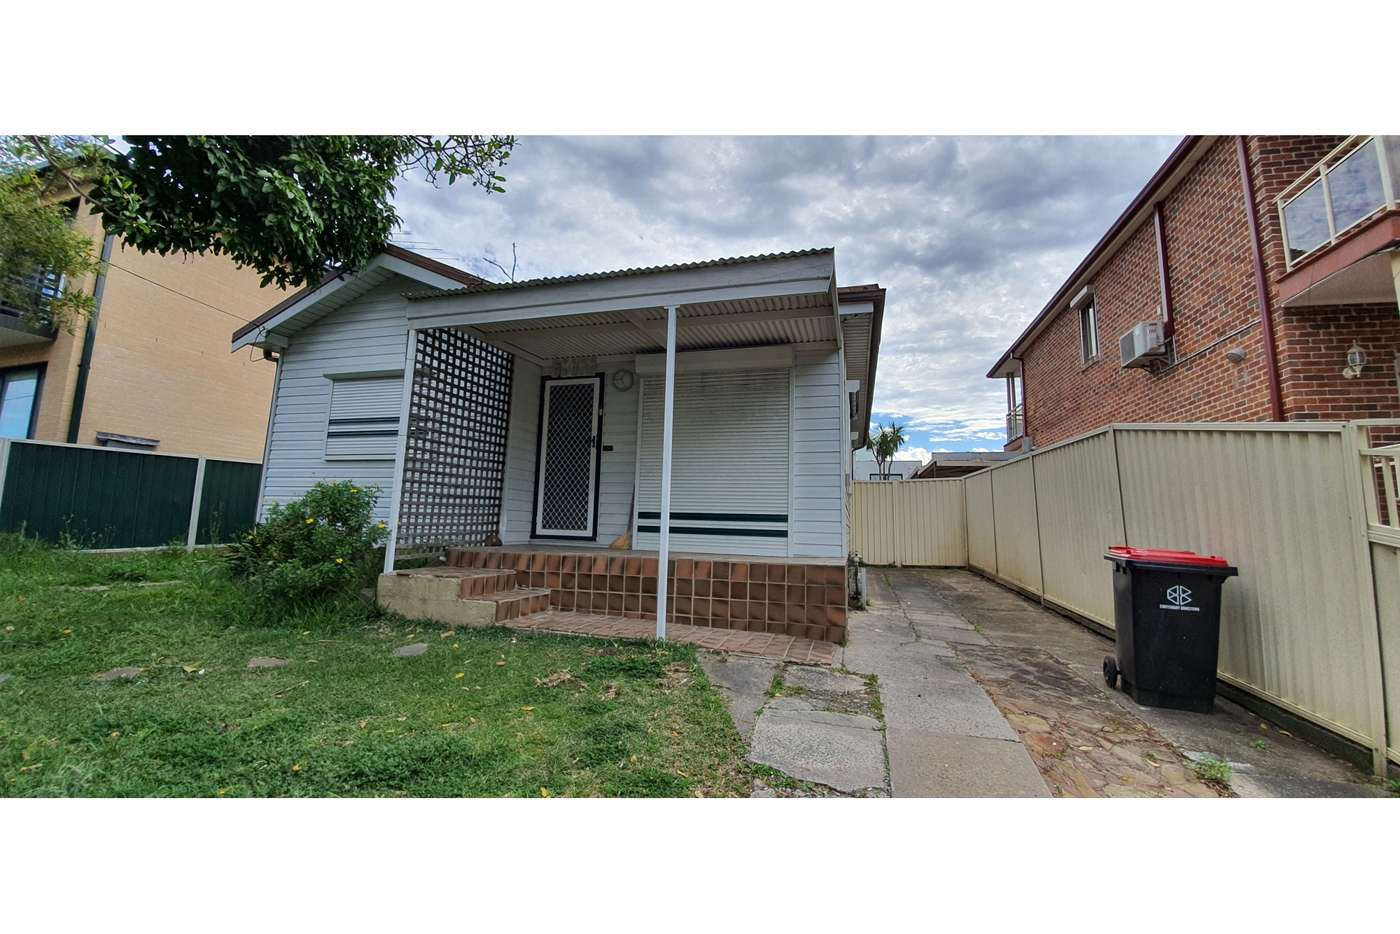 Main view of Homely house listing, 254 Edgar Street, Condell Park NSW 2200